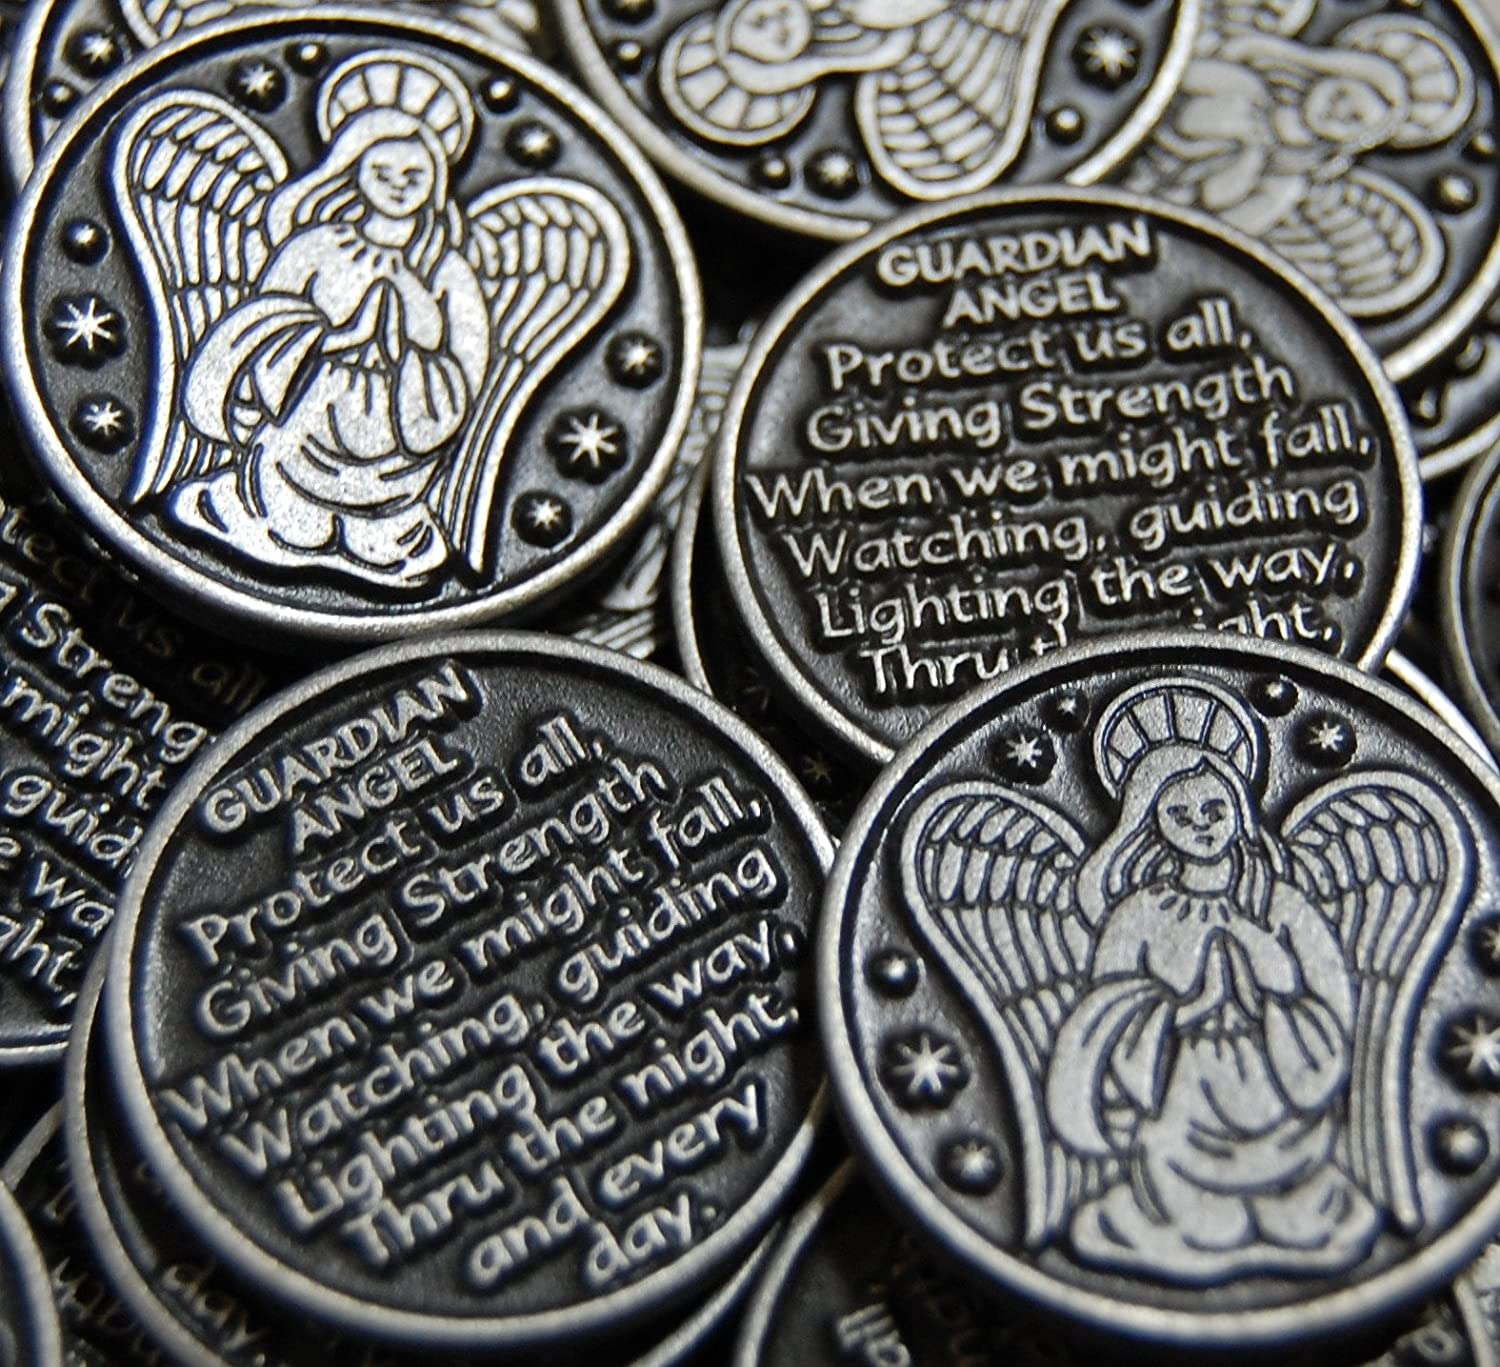 Set of 10 Guardian Angel Pocket Token Coins 5670 (10)